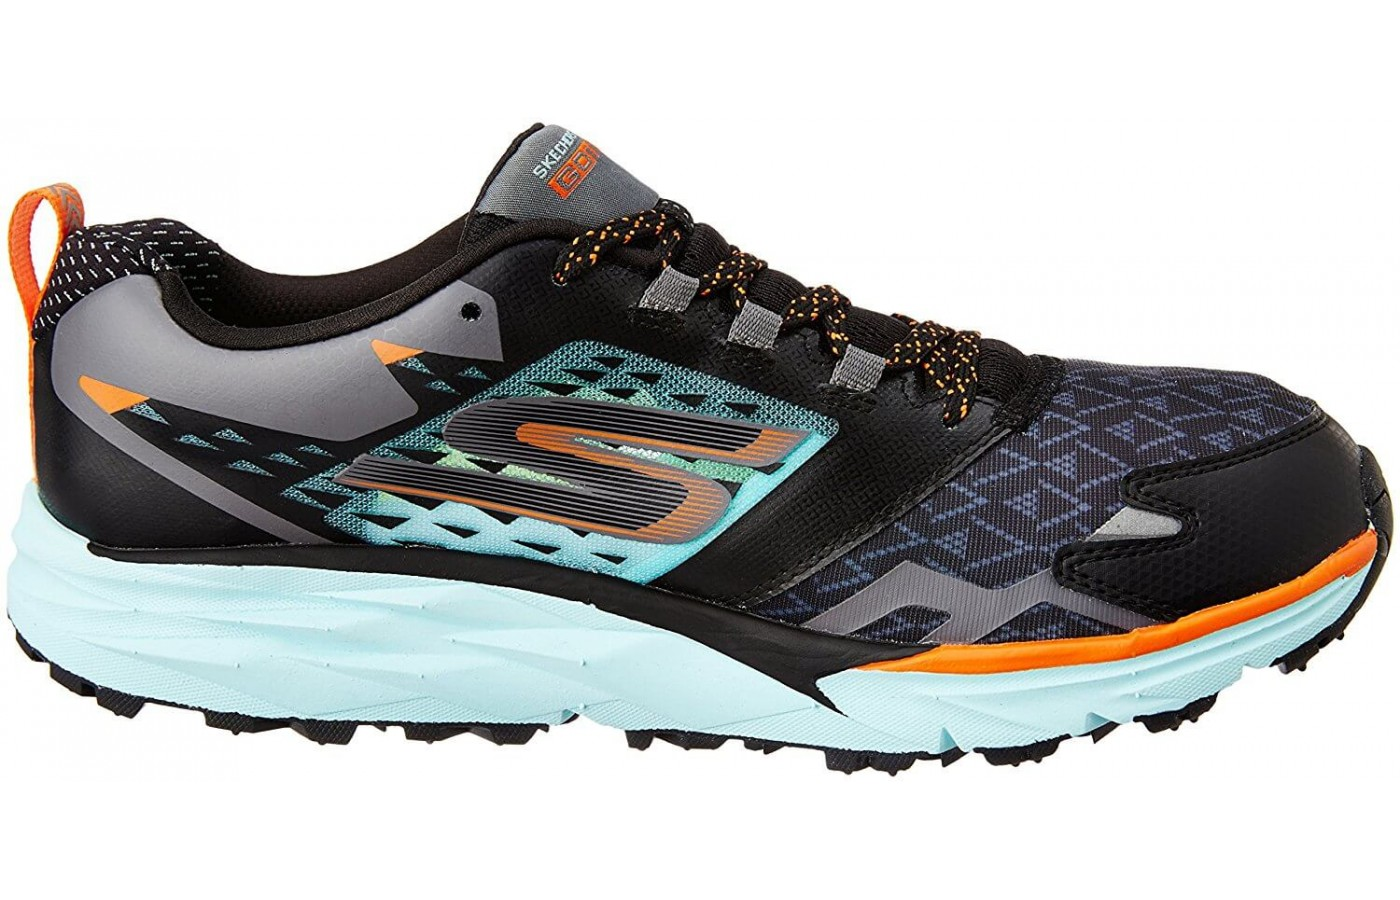 A view of the Skechers GoTrail's medial side.